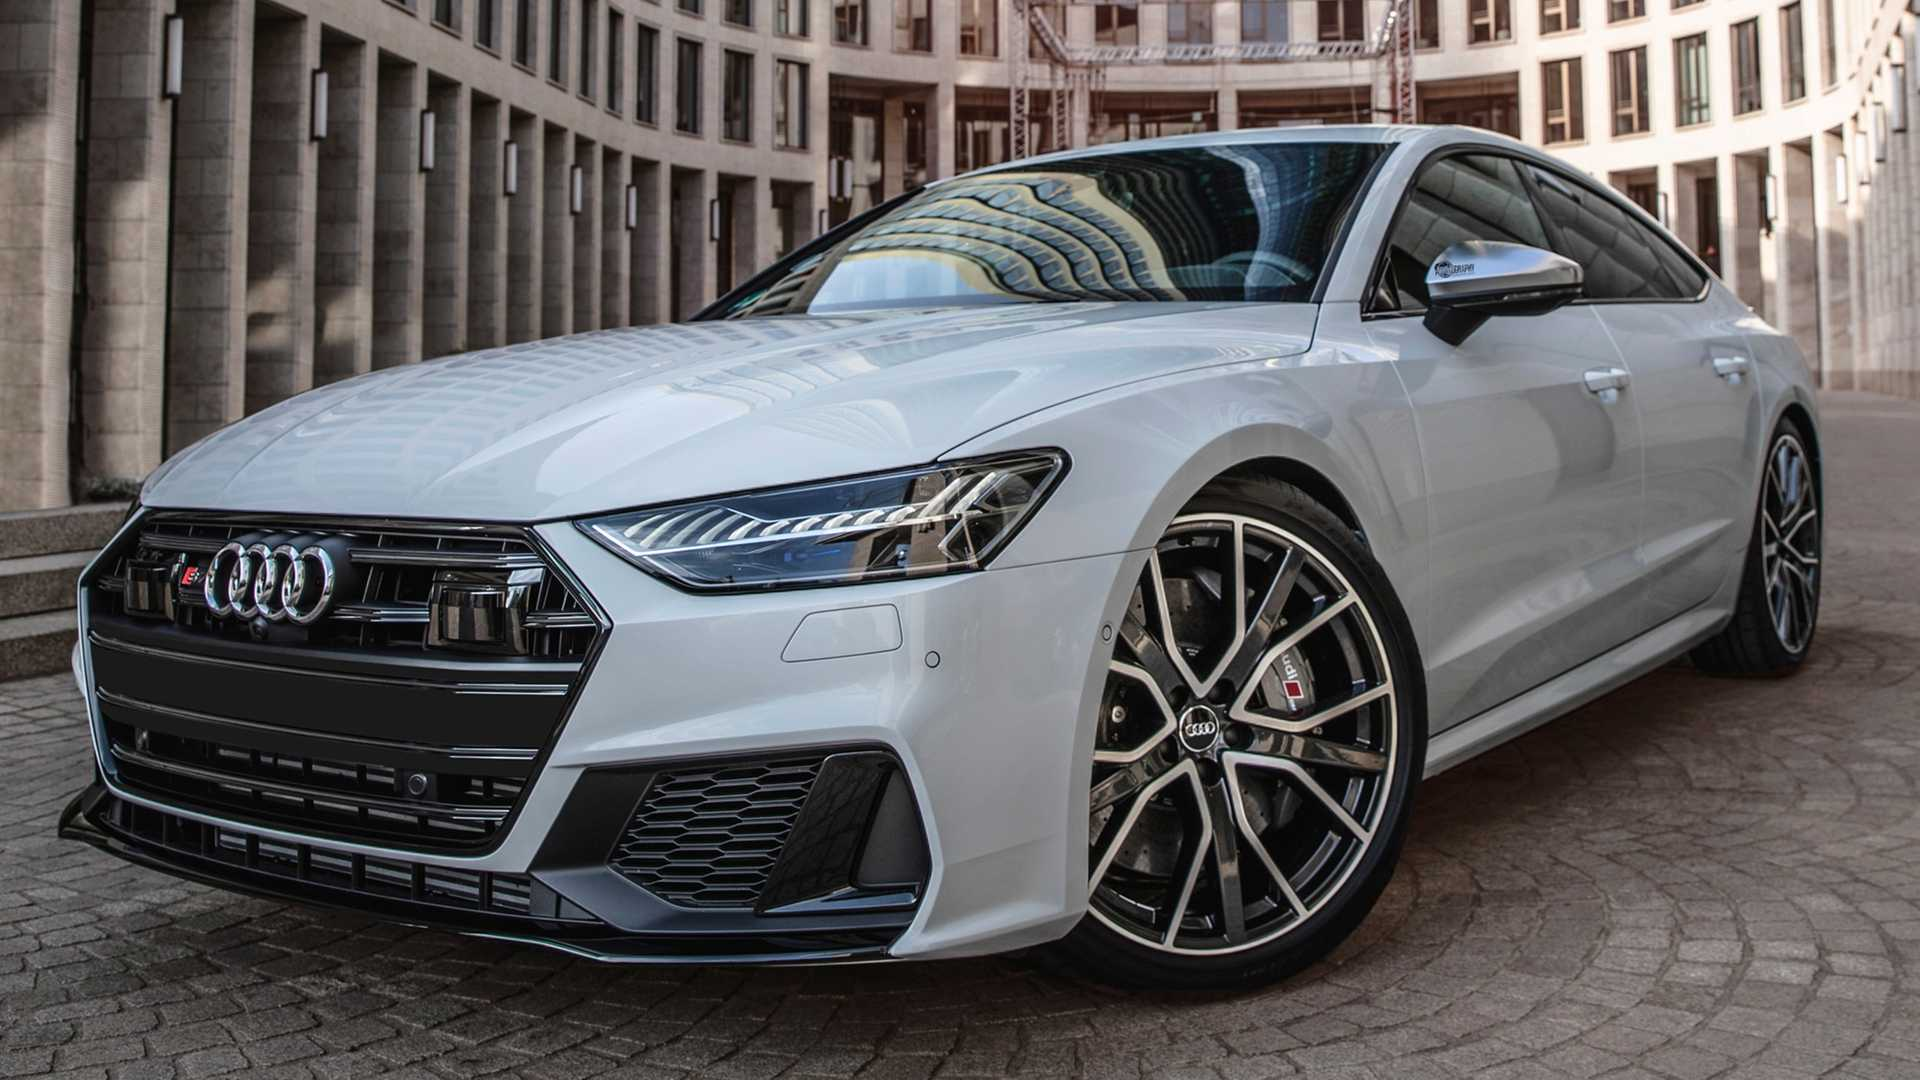 55 All New 2020 Audi Style